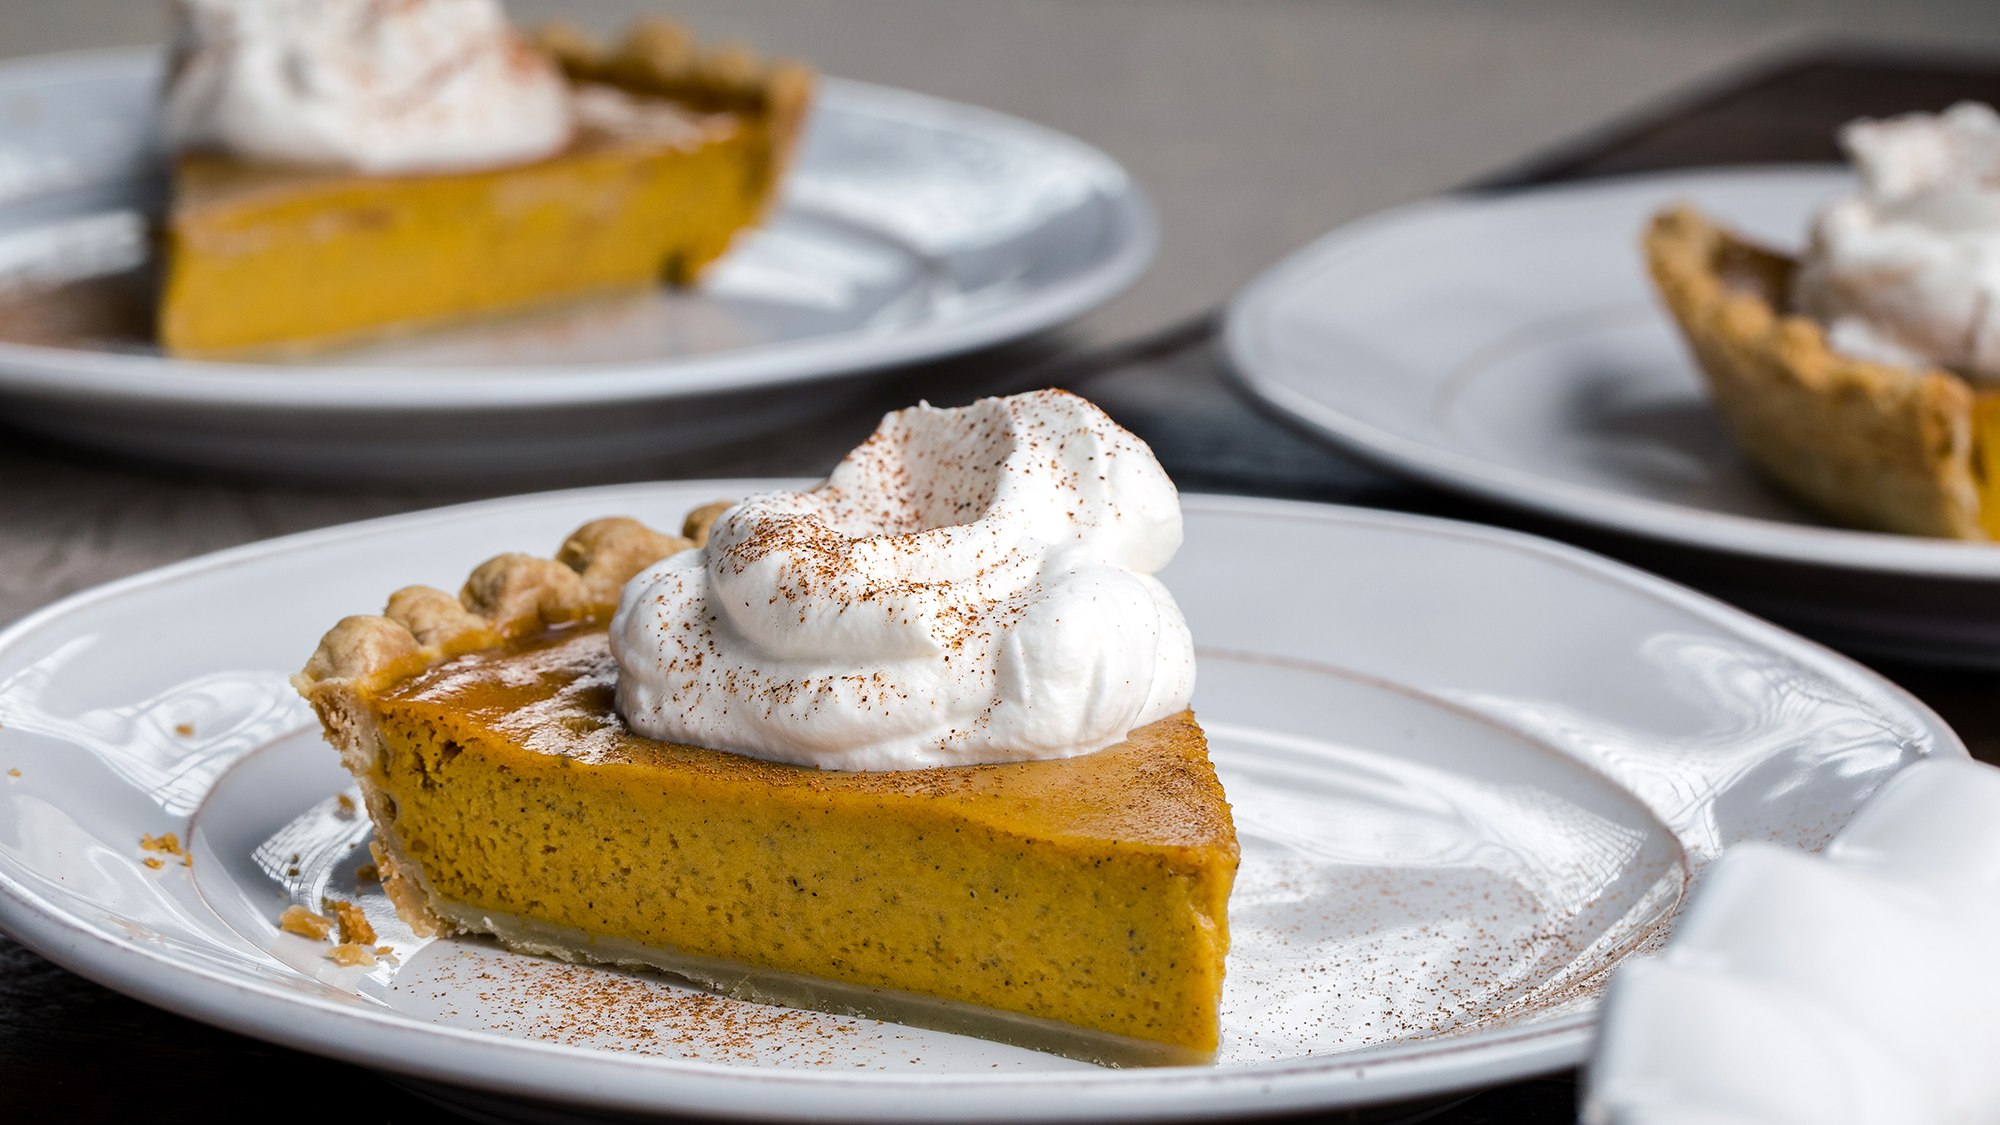 Signature-Pumpkin-Pie-Signature-Pumpkin-Pie-2000x1125.png